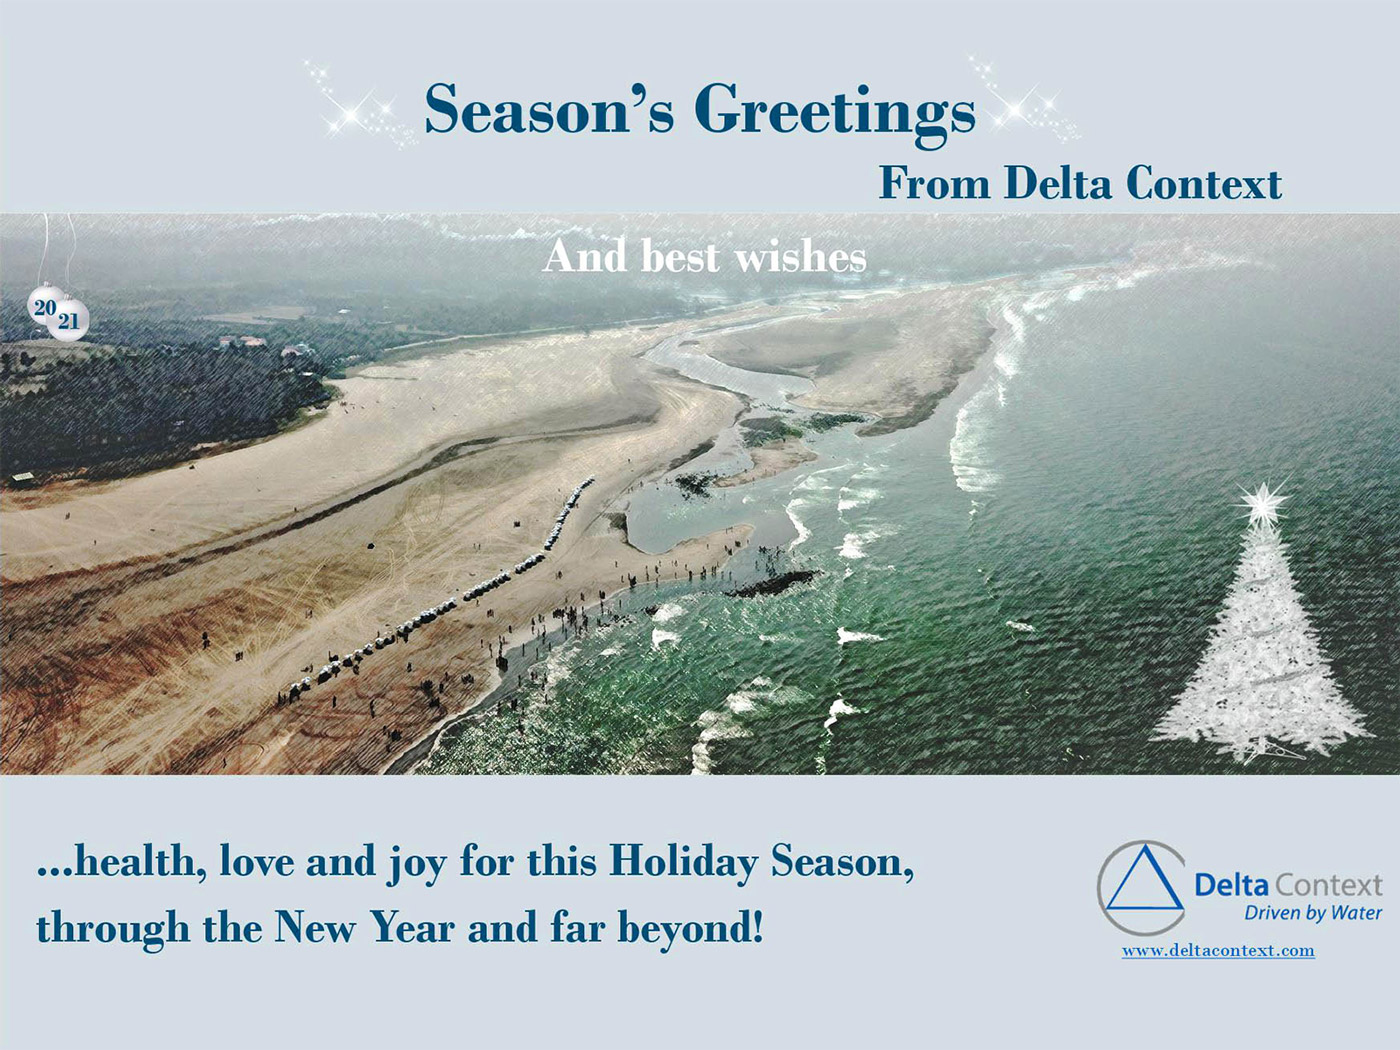 You are currently viewing Season's Greetings from Delta Context!